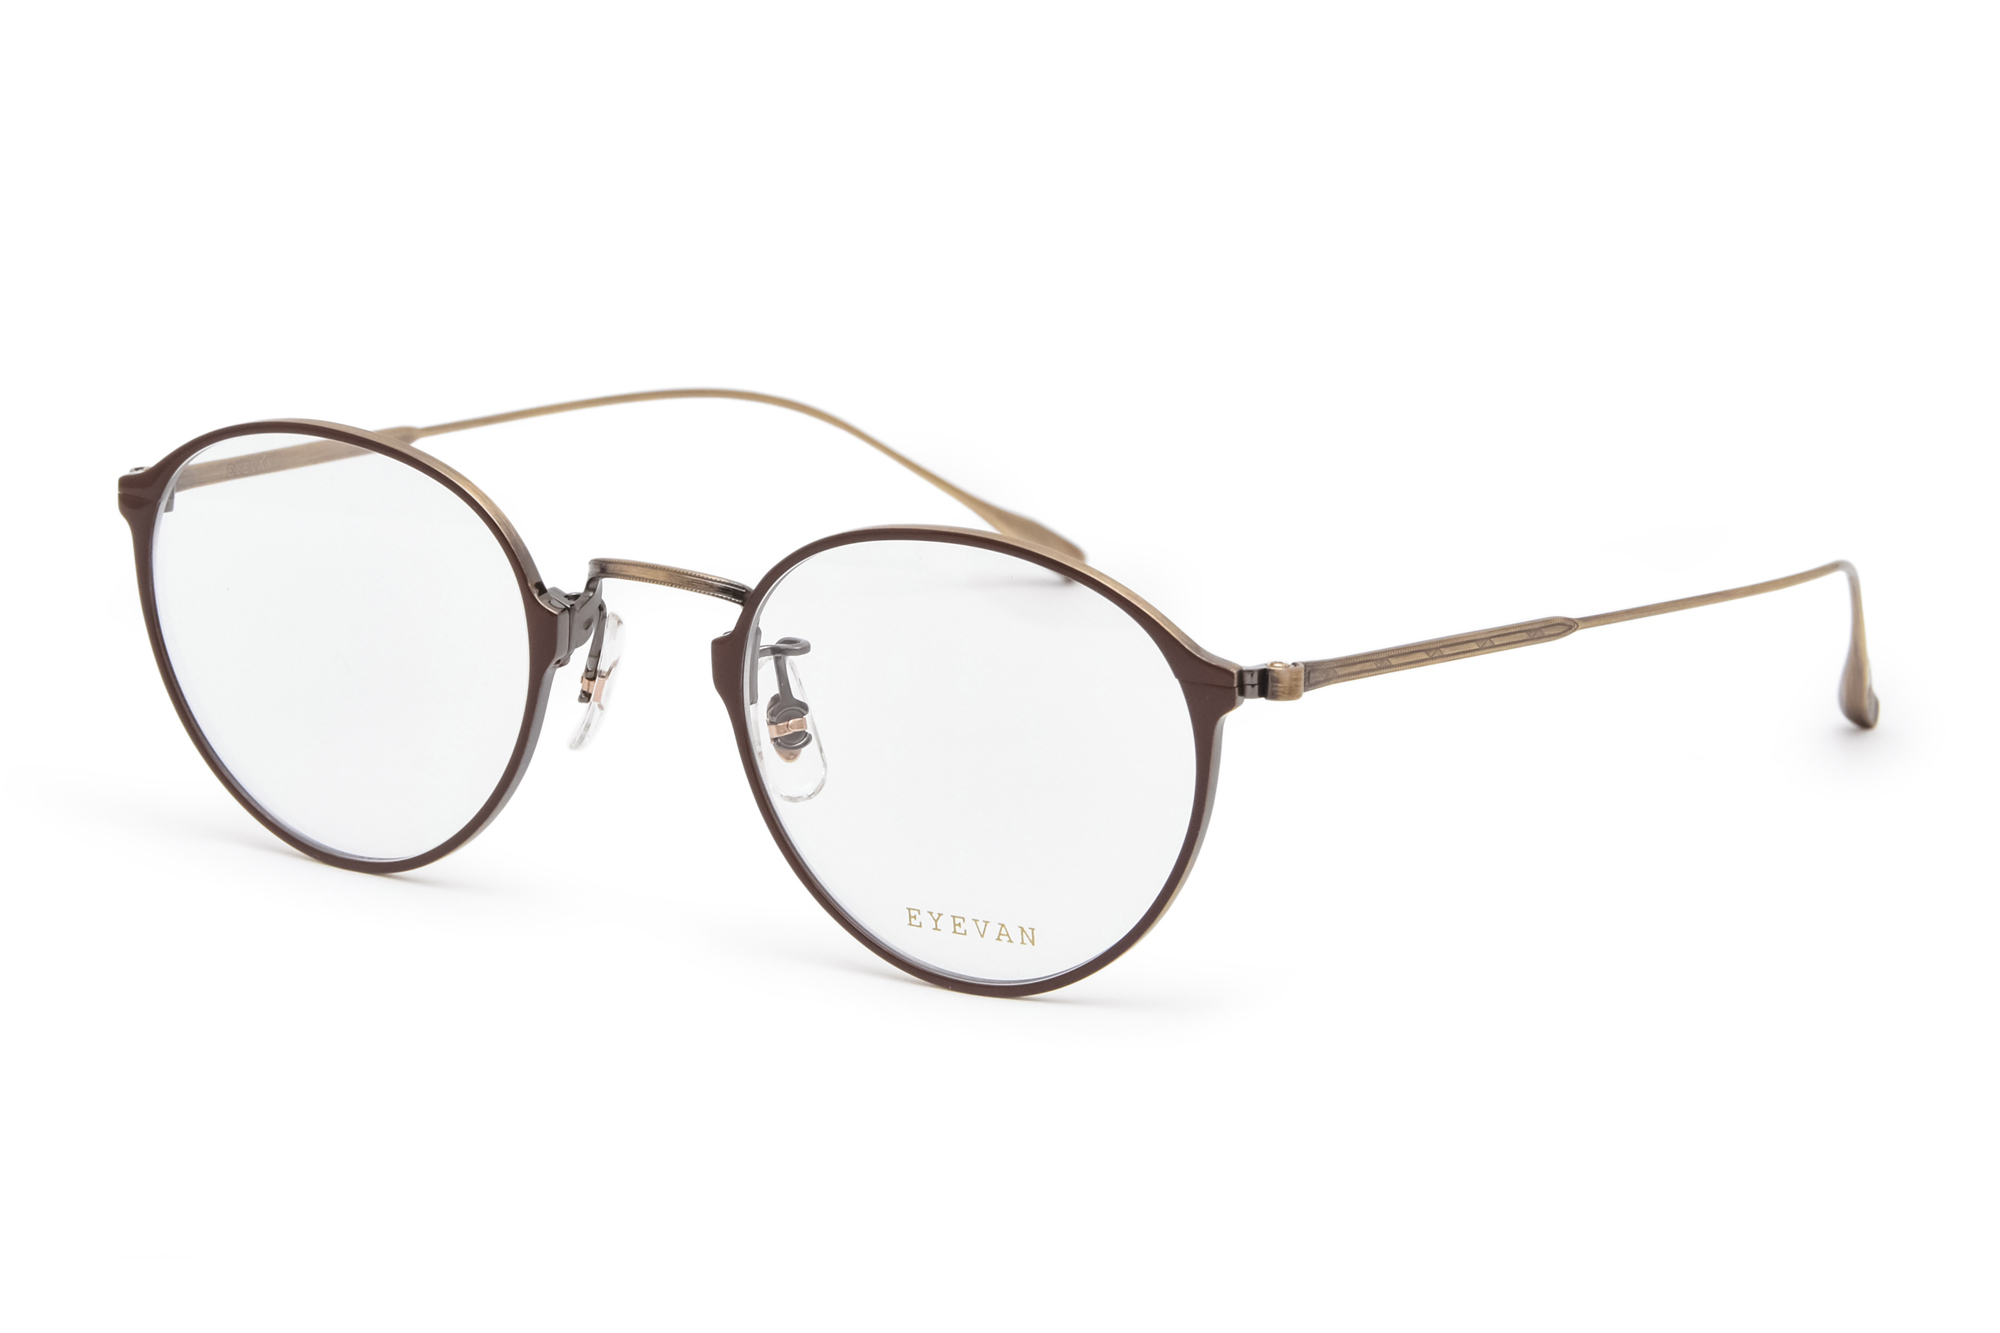 アイヴァン(EYEVAN) TACKETT/BRN (R.C.P 60th Limited Color)